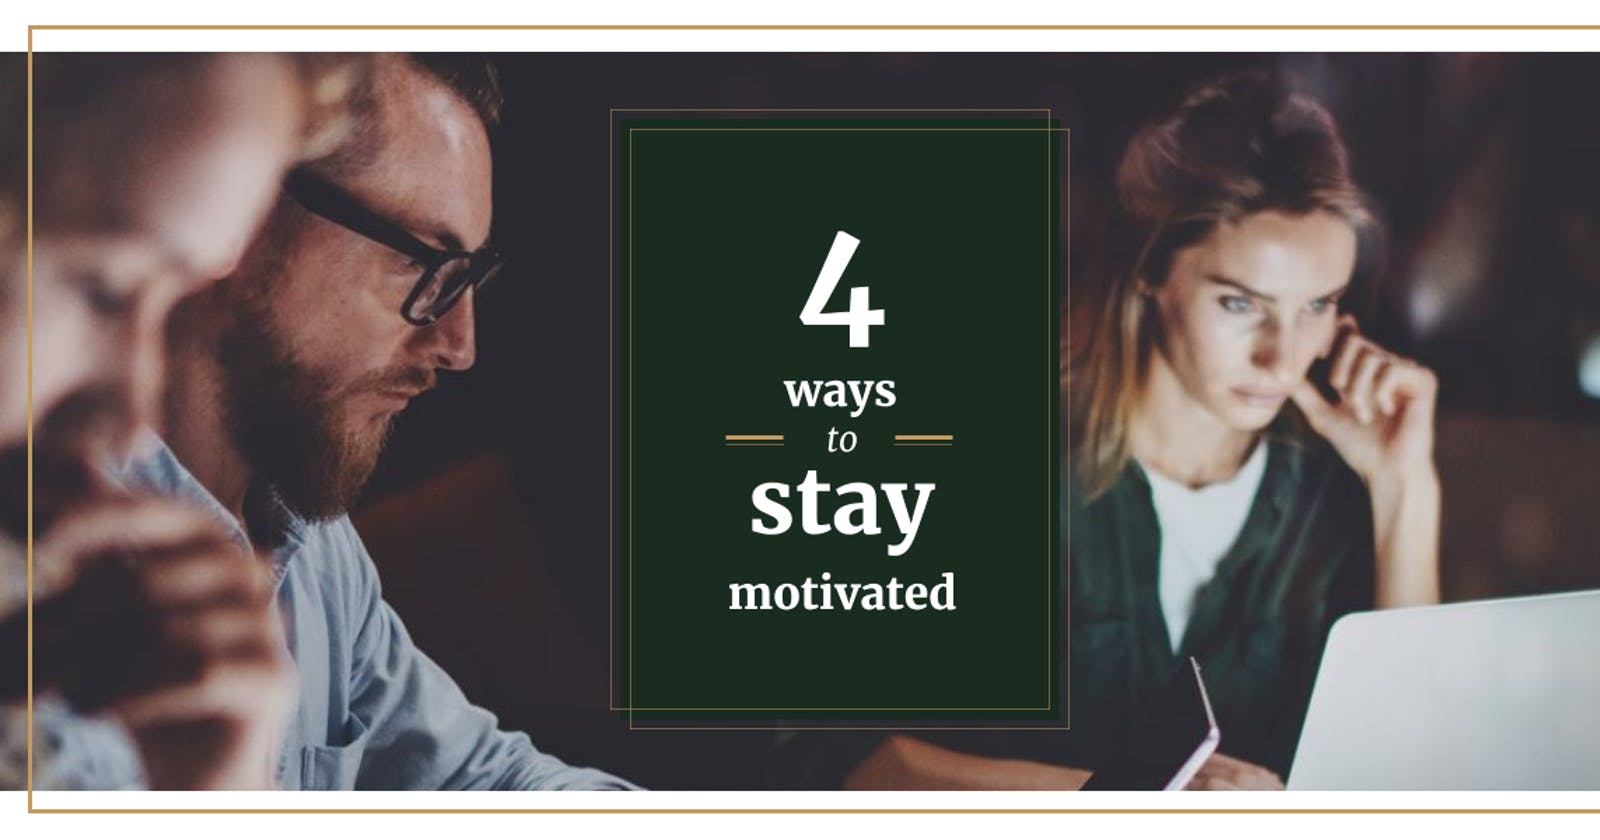 4 ways to stay motivated at work